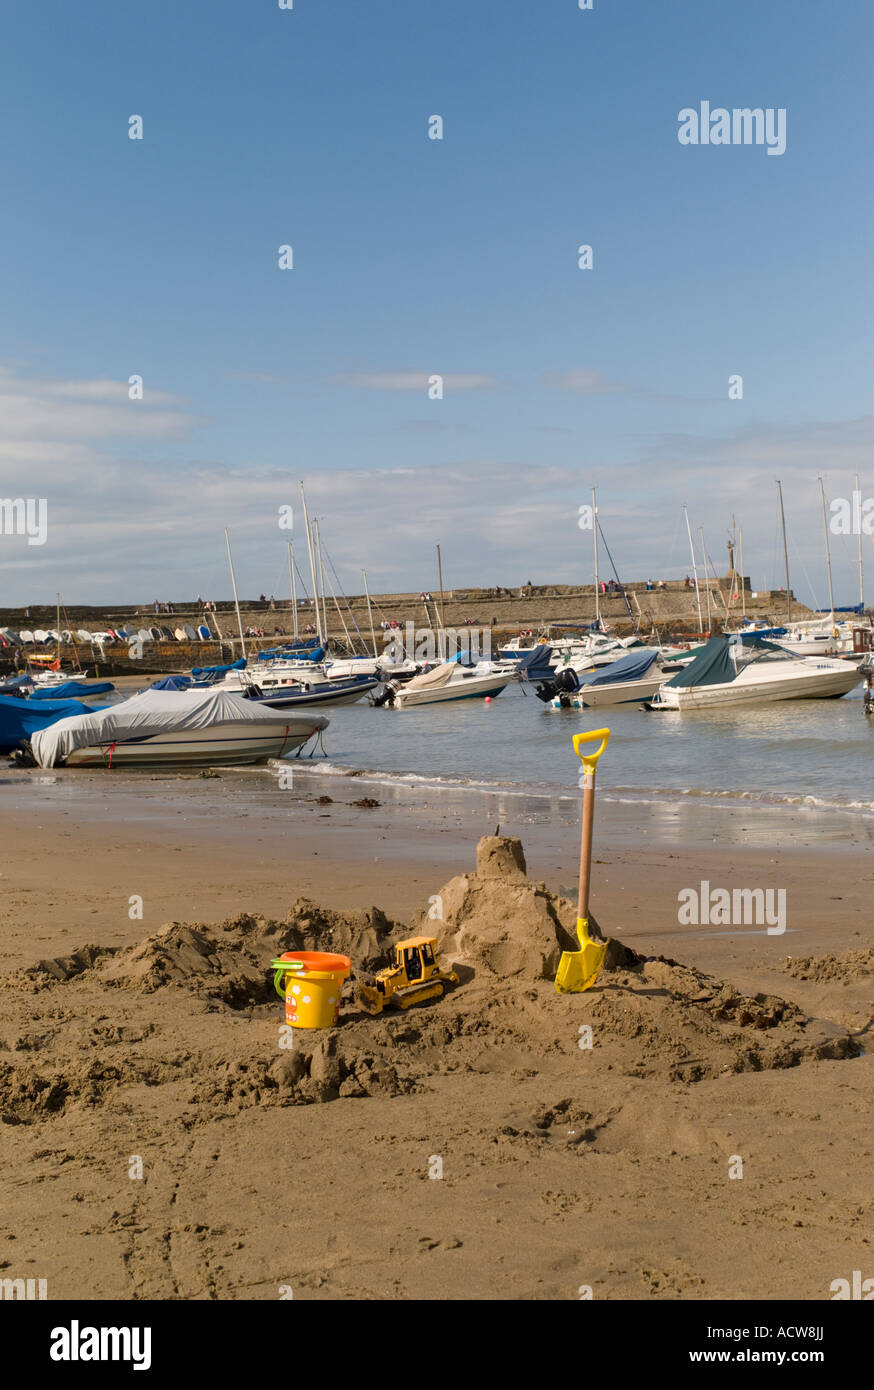 A child's sandcastle bucket and spade on New Quay beach Cardigan Bay west wales with boats moored in the harbour - Stock Image